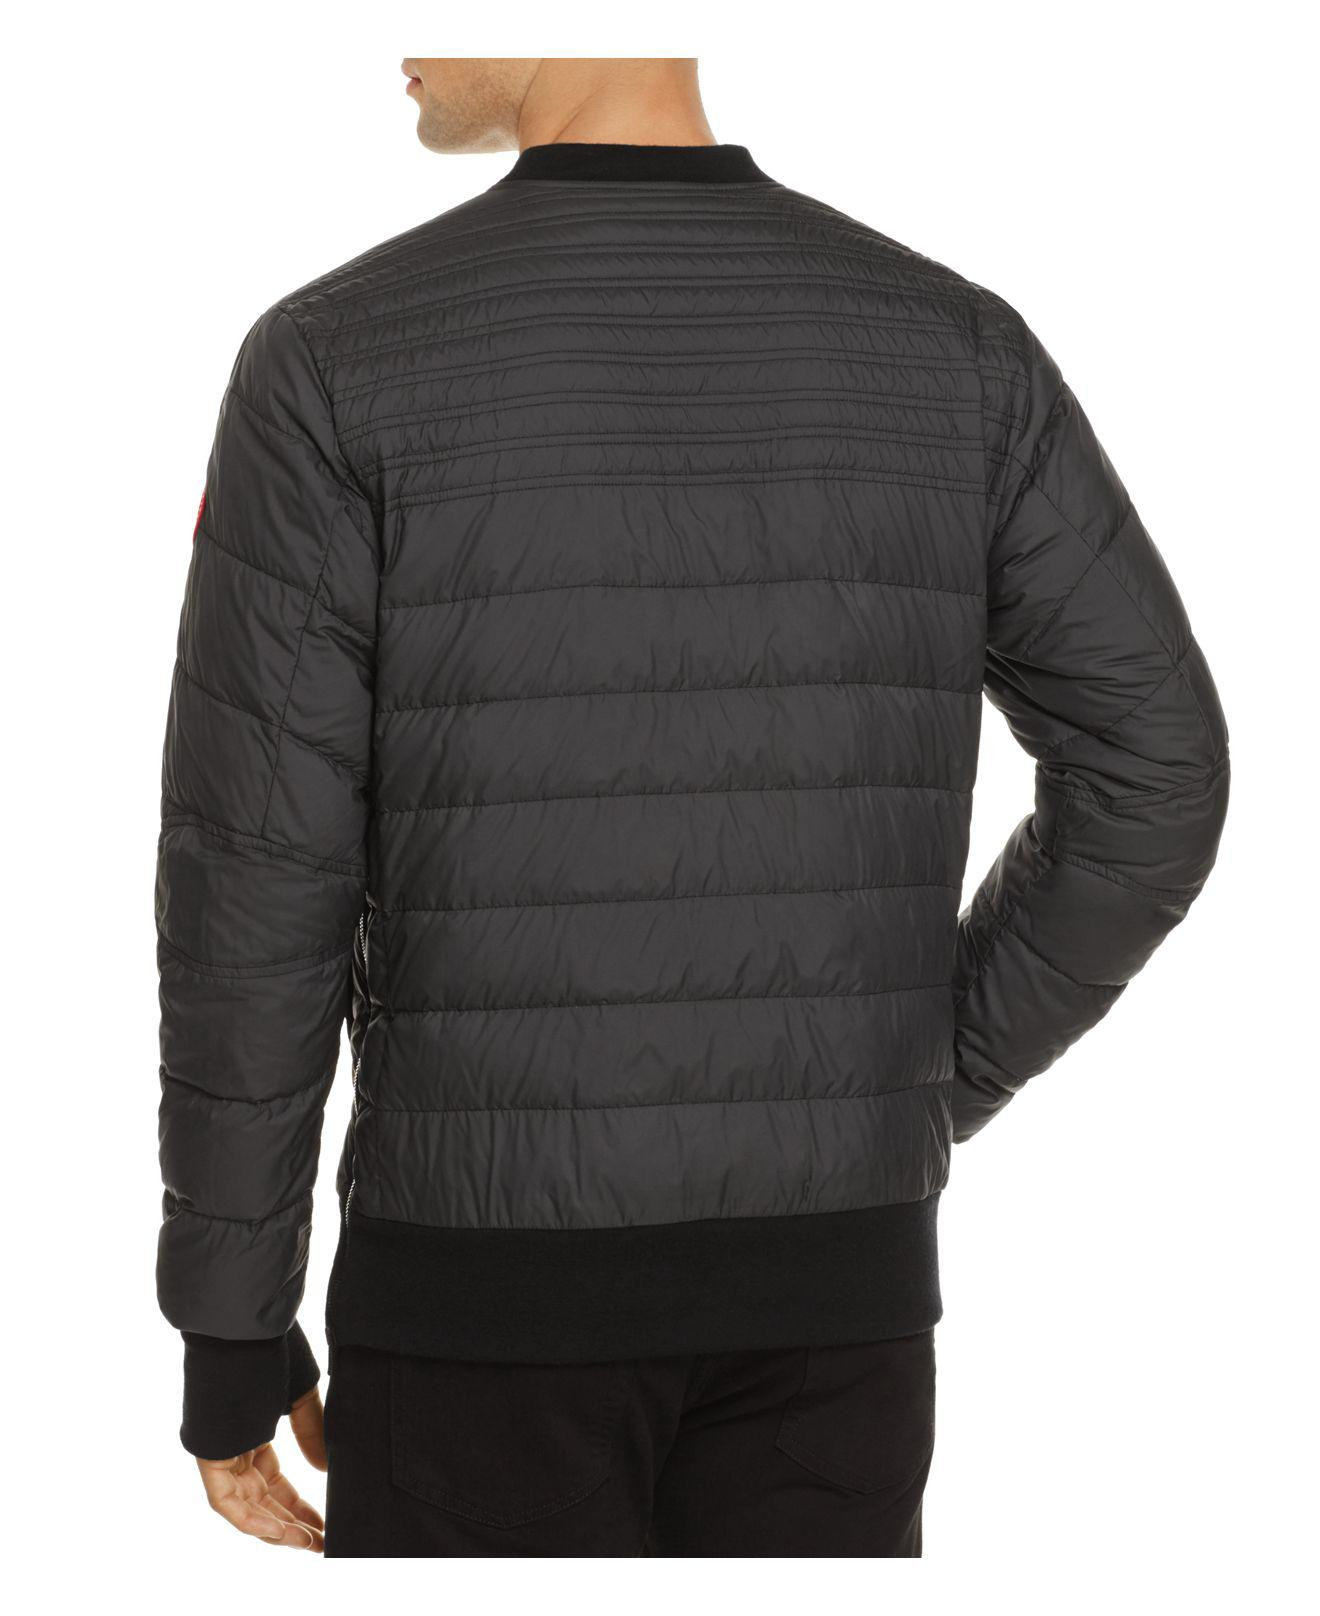 b6326390 Canada Goose Albanny Quilted Down Sweatshirt in Black for Men - Lyst